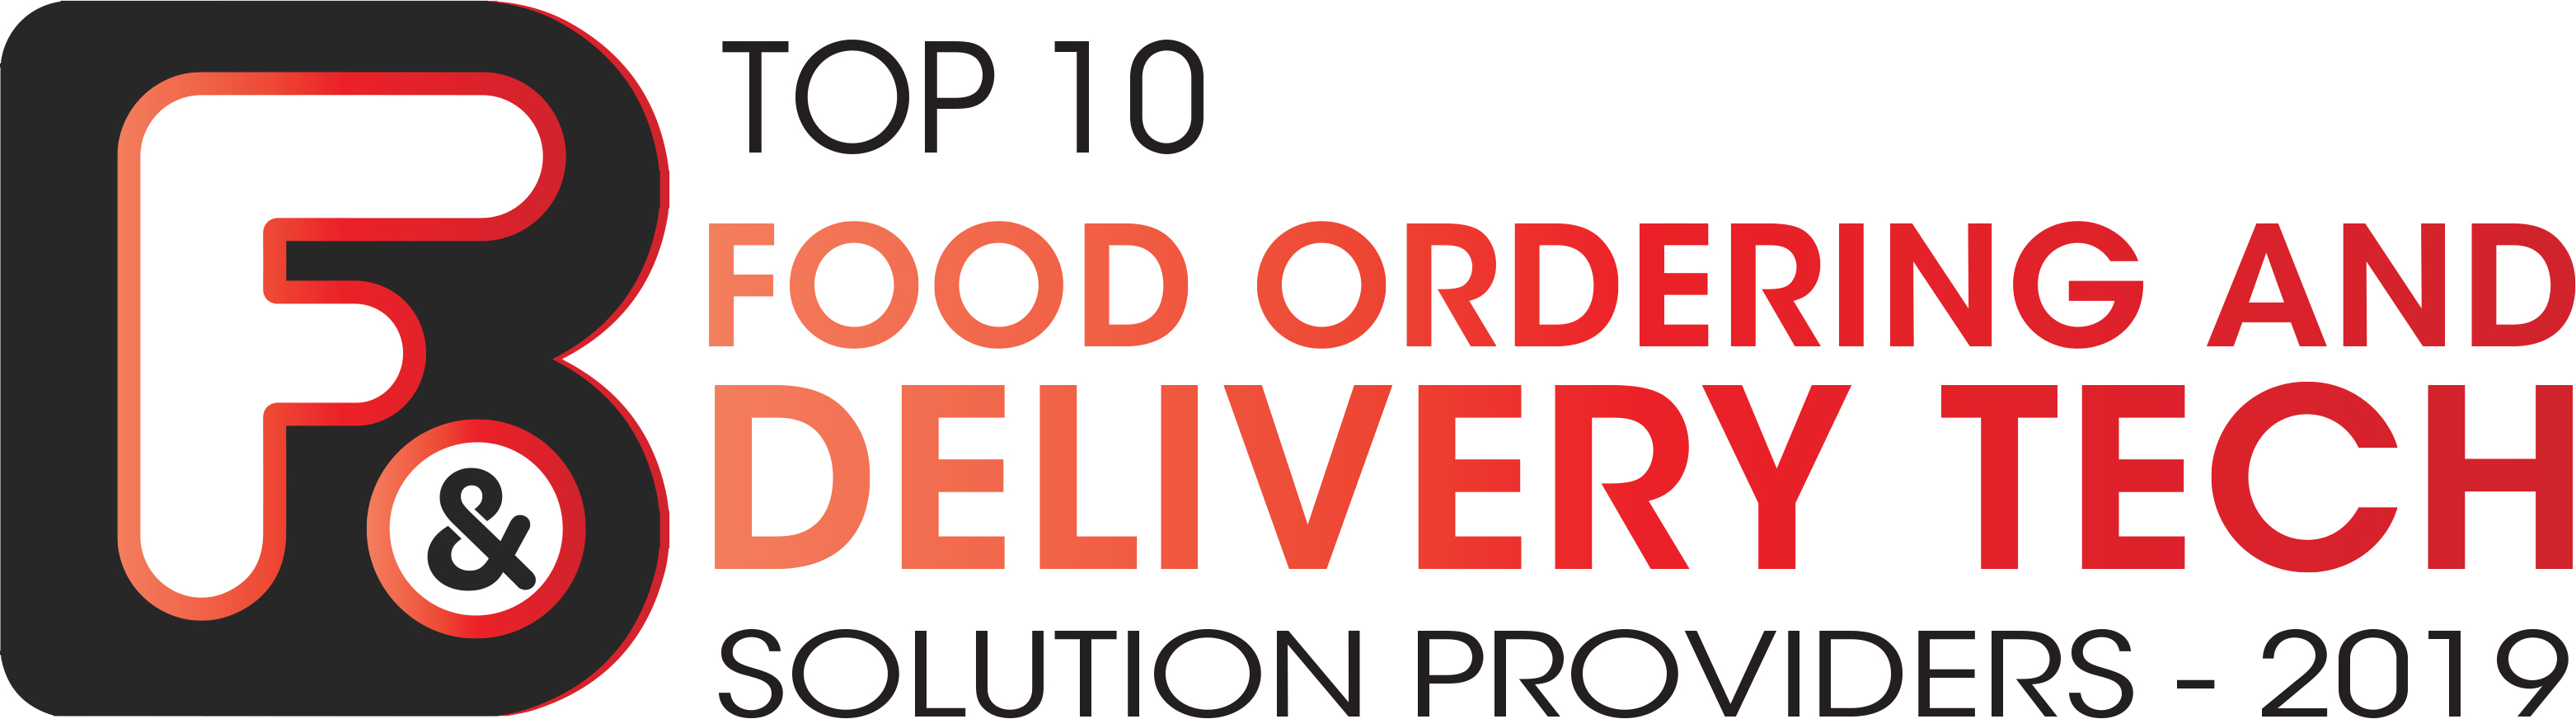 Top 10 Food Ordering and Delivery Tech Solution Companies - 2019